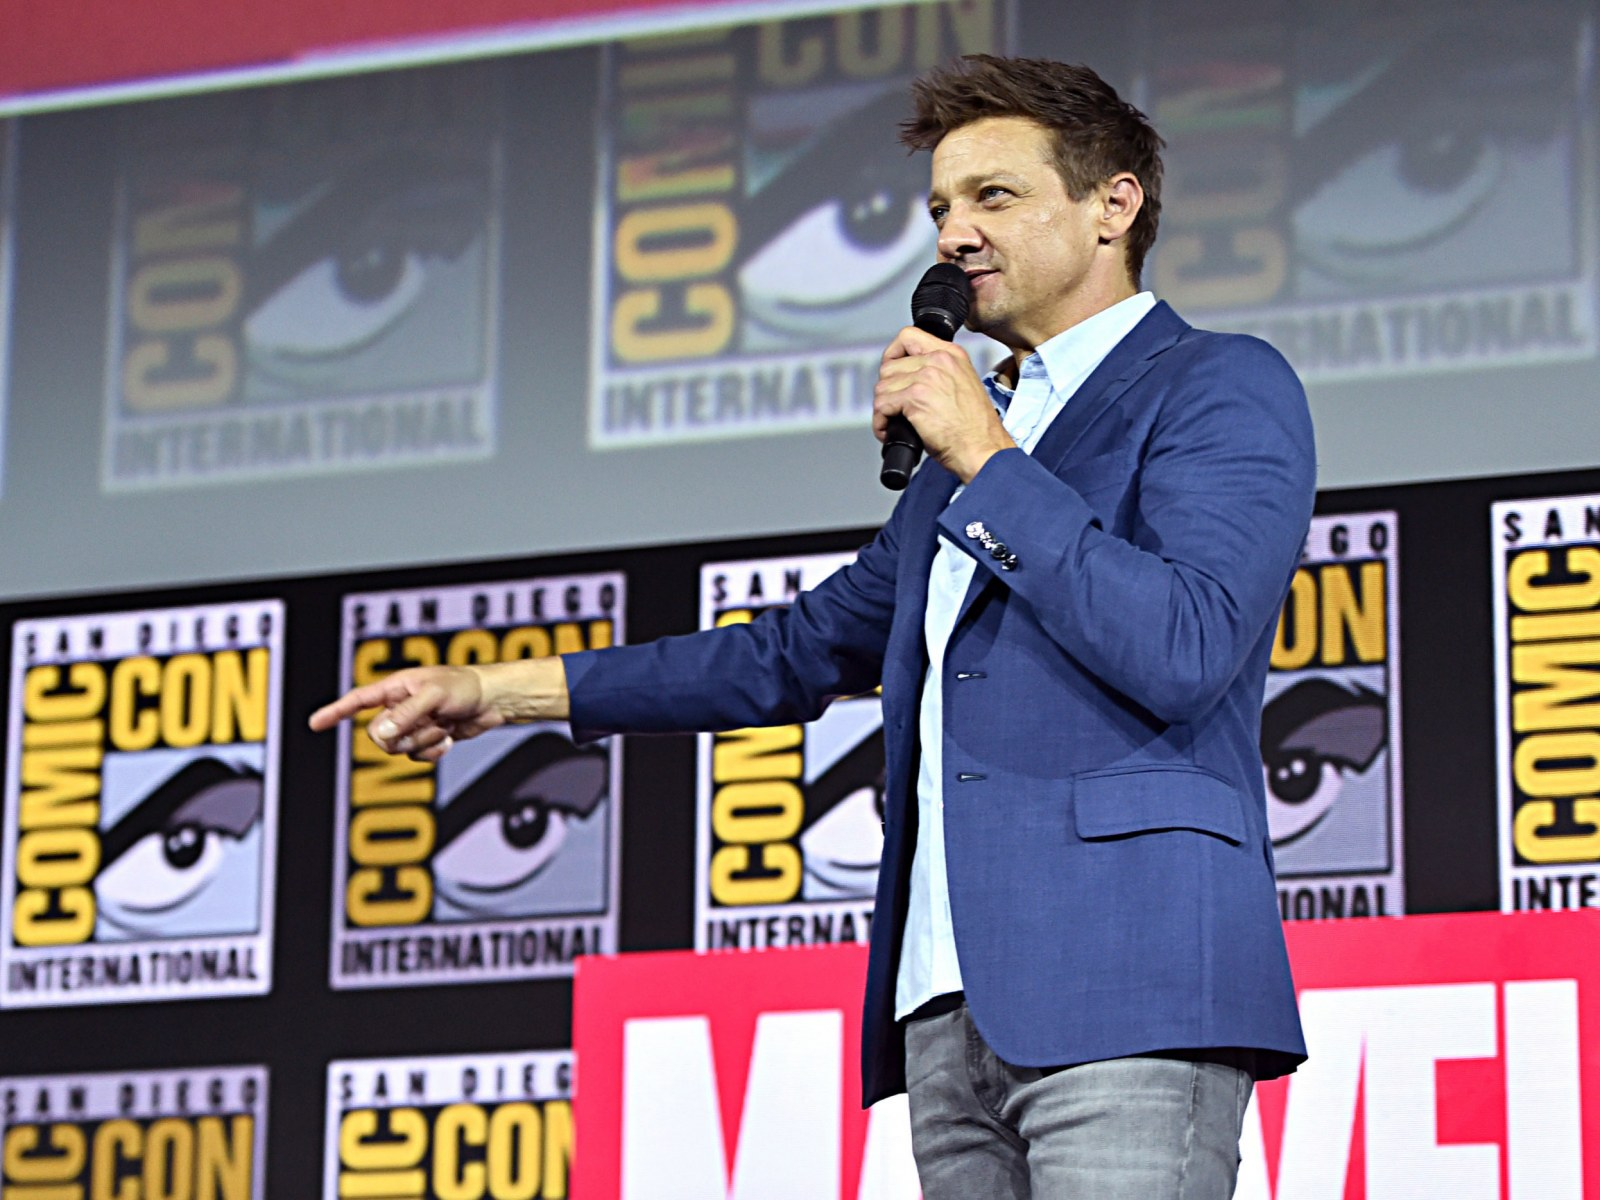 Audio Porno Troll avengers' star jeremy renner shuts down app after being